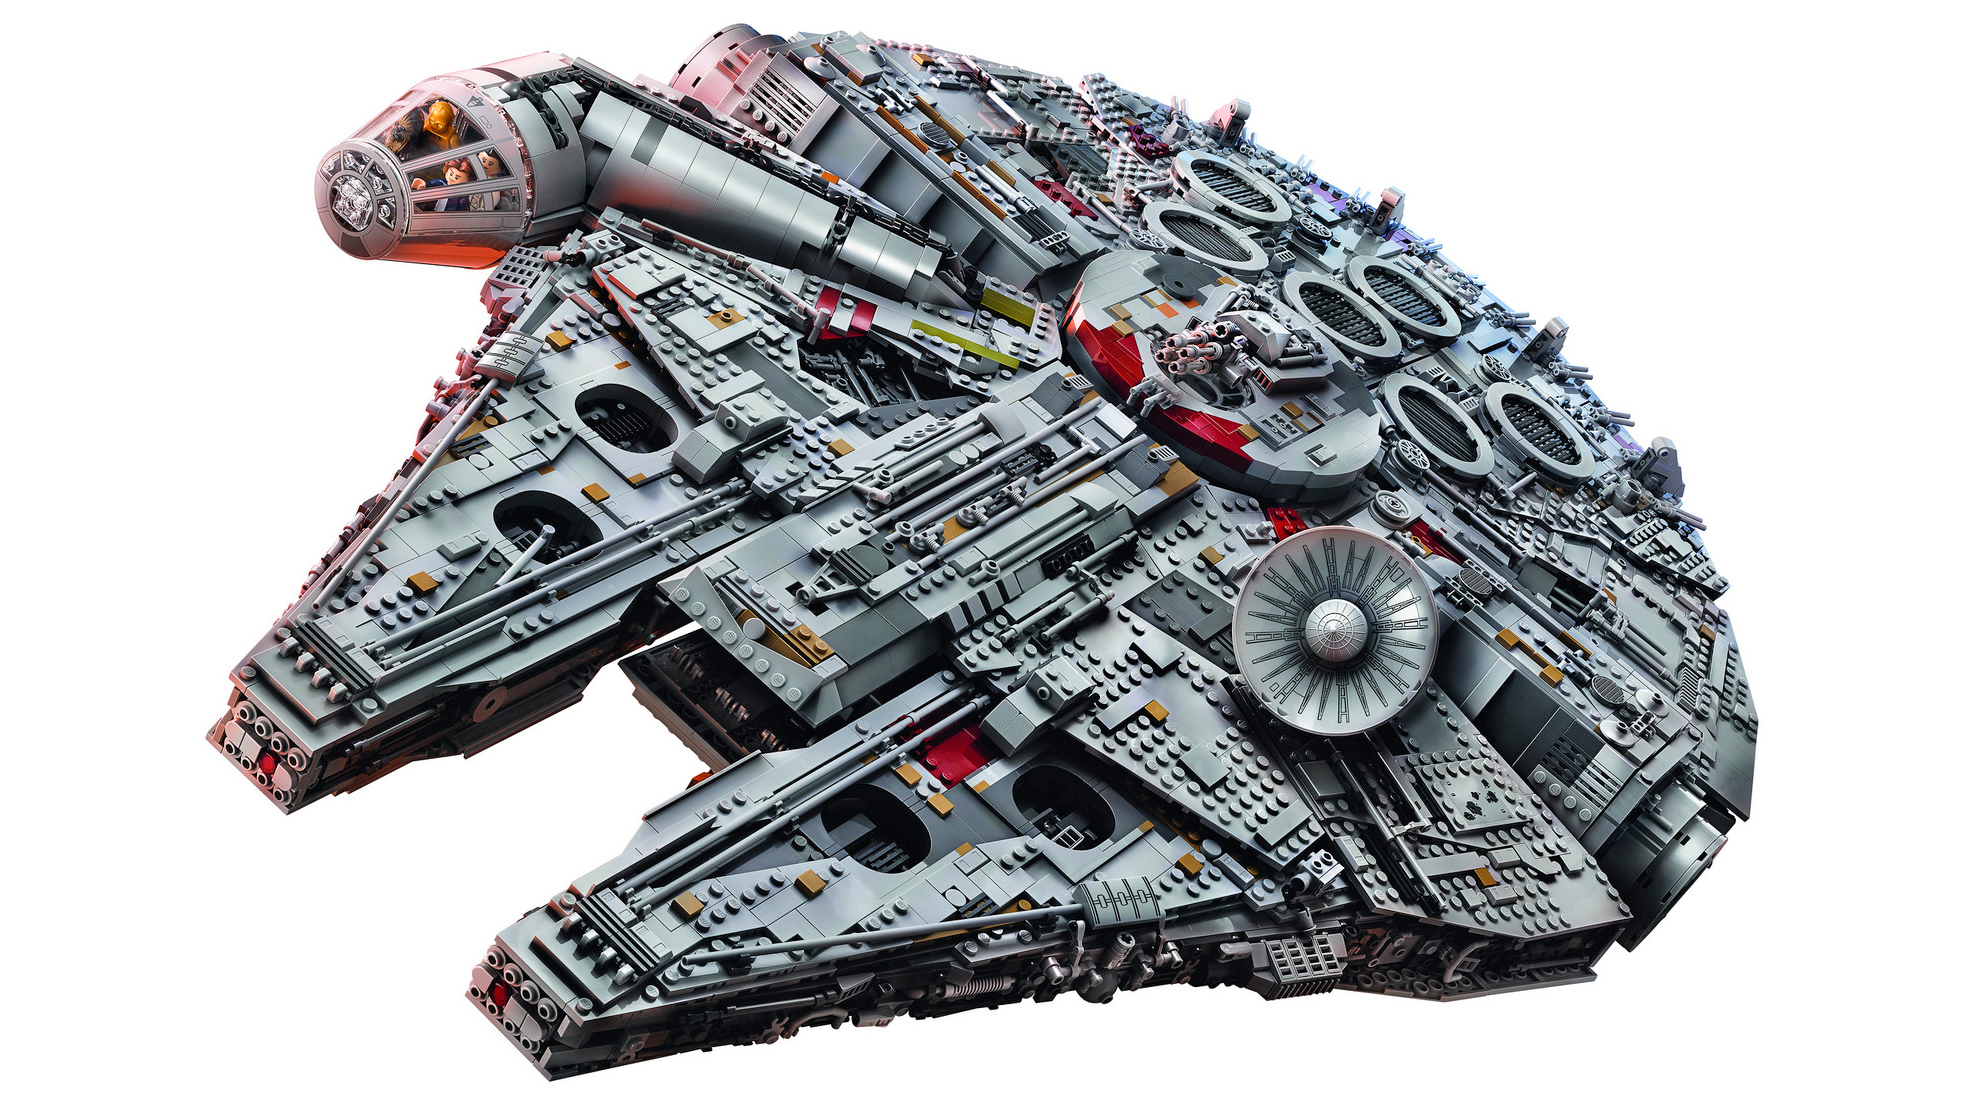 The 7,541-Piece UCS Millennium Falcon Is The Biggest LEGO Set Ever Sold 10